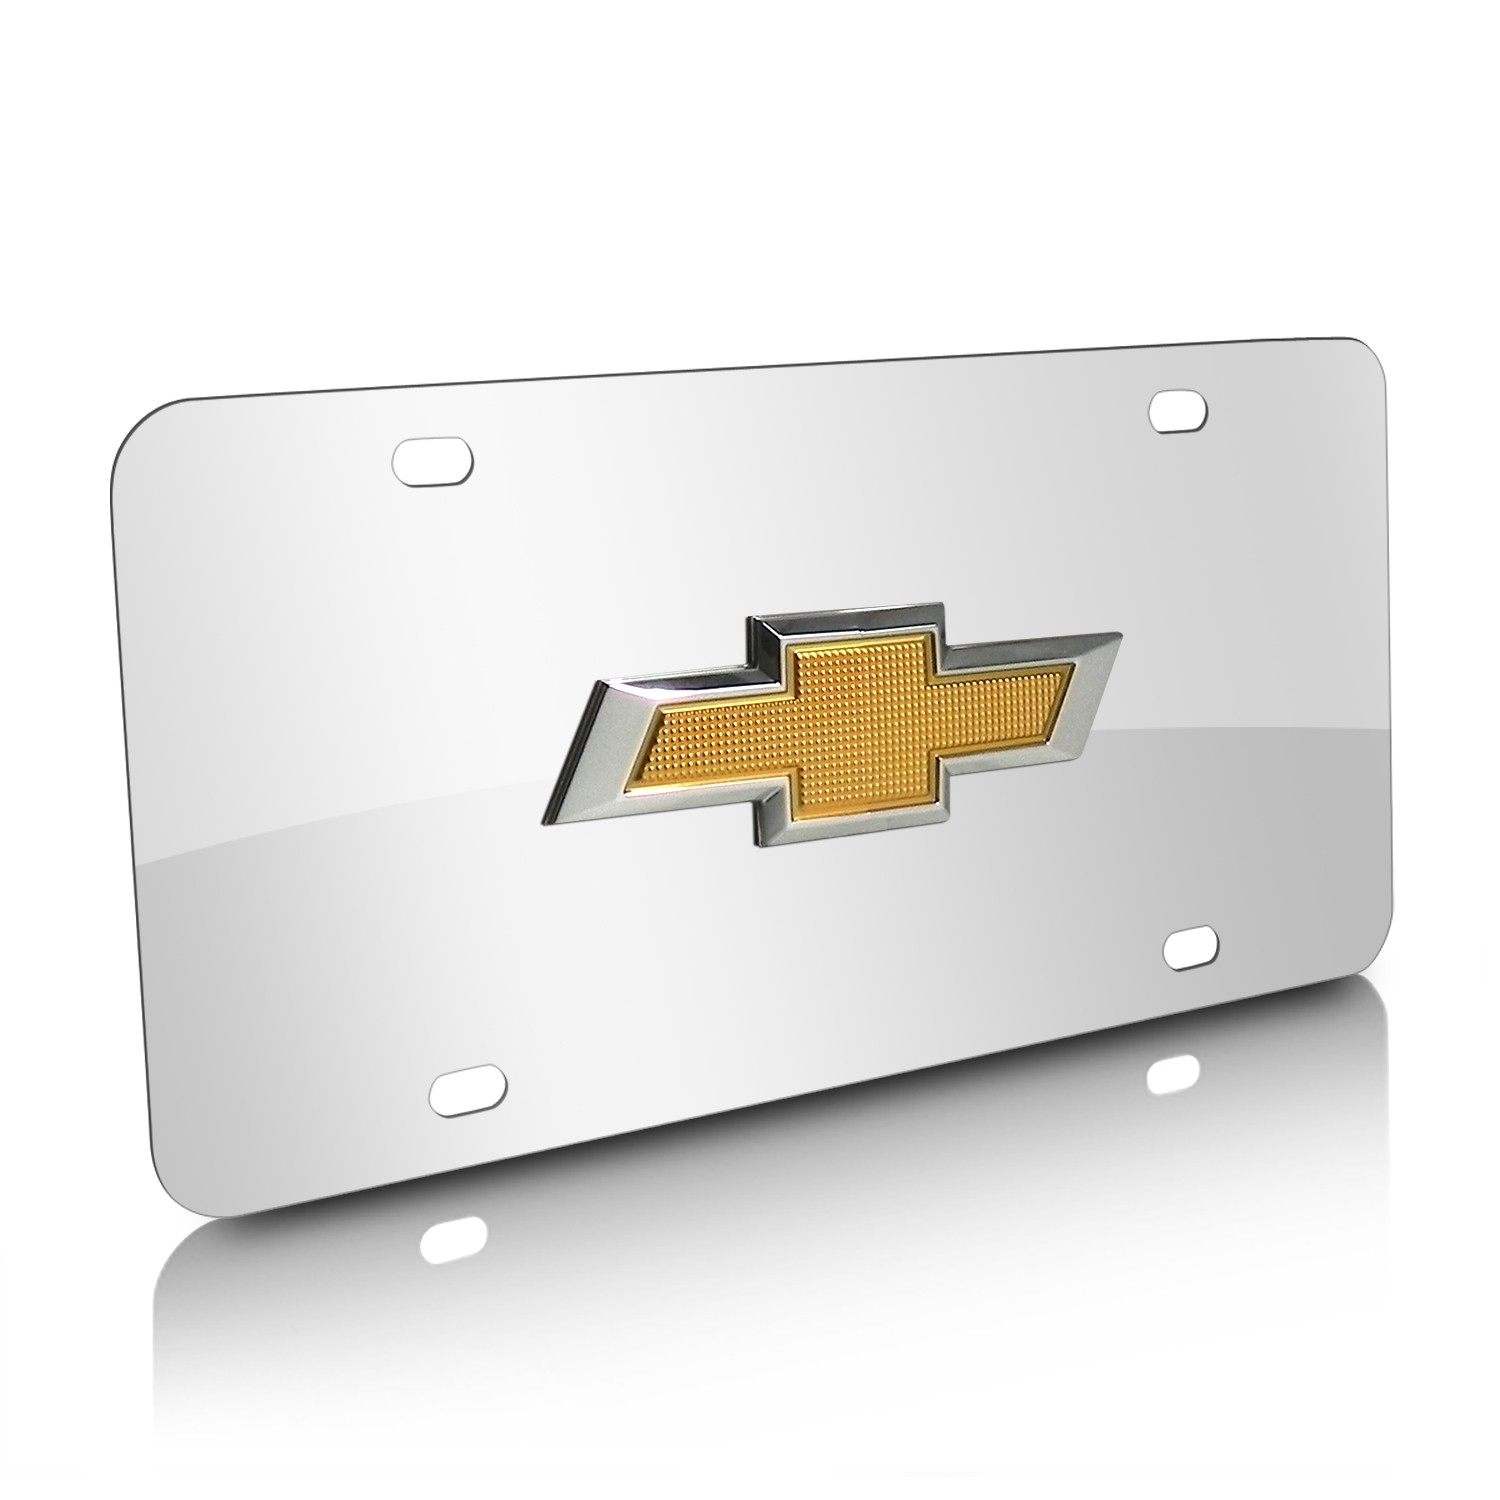 Chevrolet New Gold Bowtie 3D Logo Chrome Stainless Steel License Plate